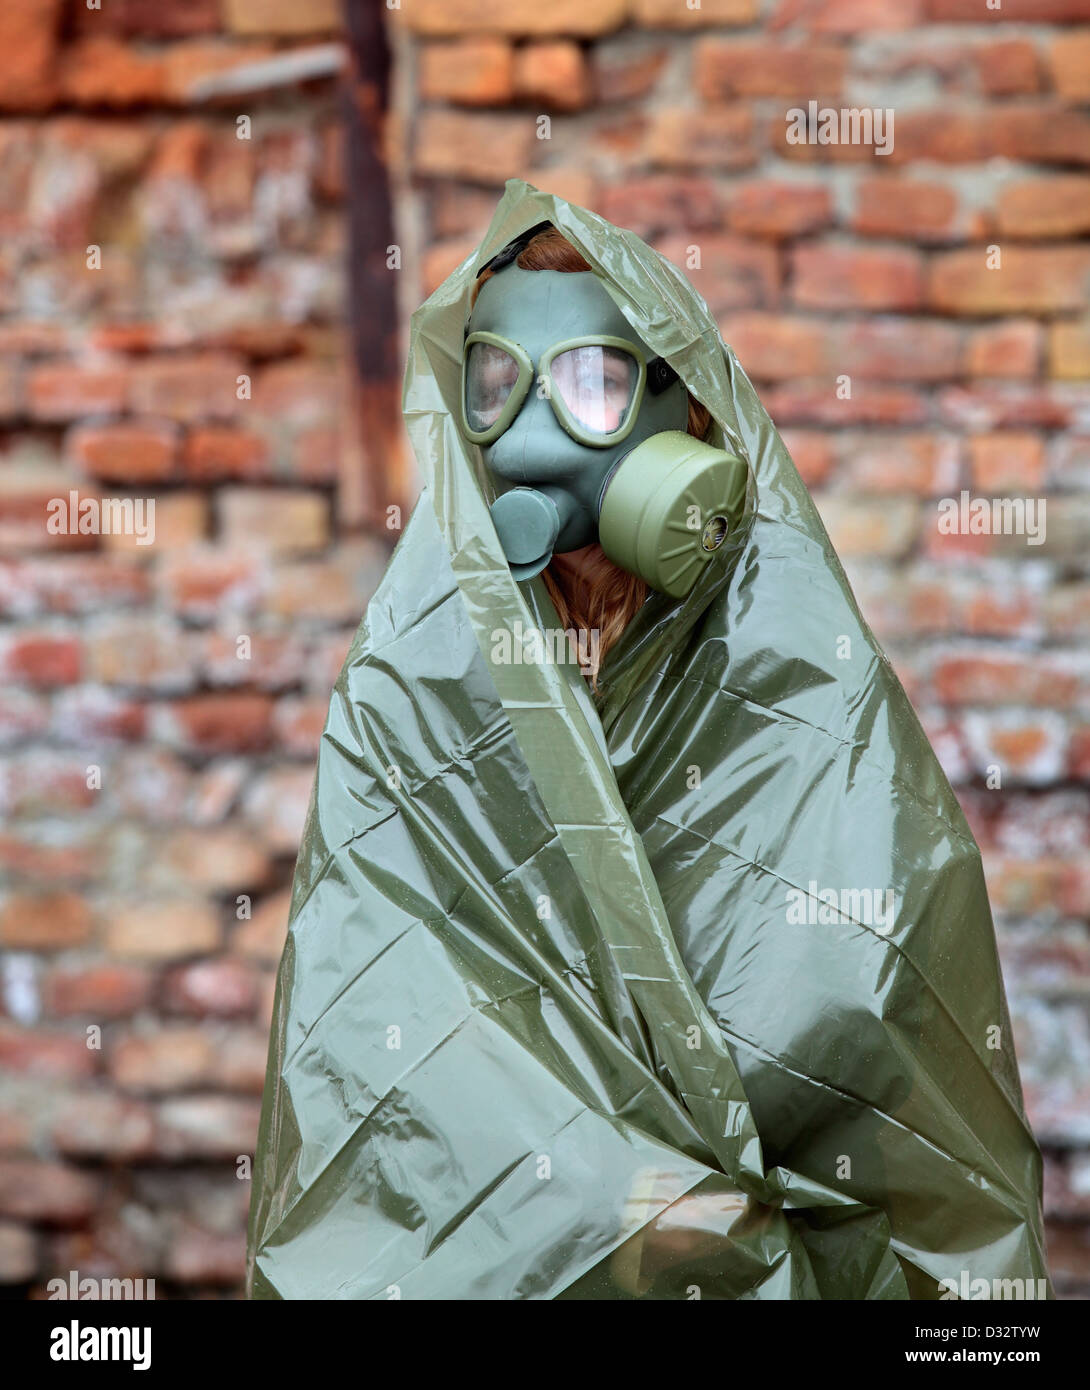 Protective wear and mask for nuclear, bio and chemical protection - Stock Image